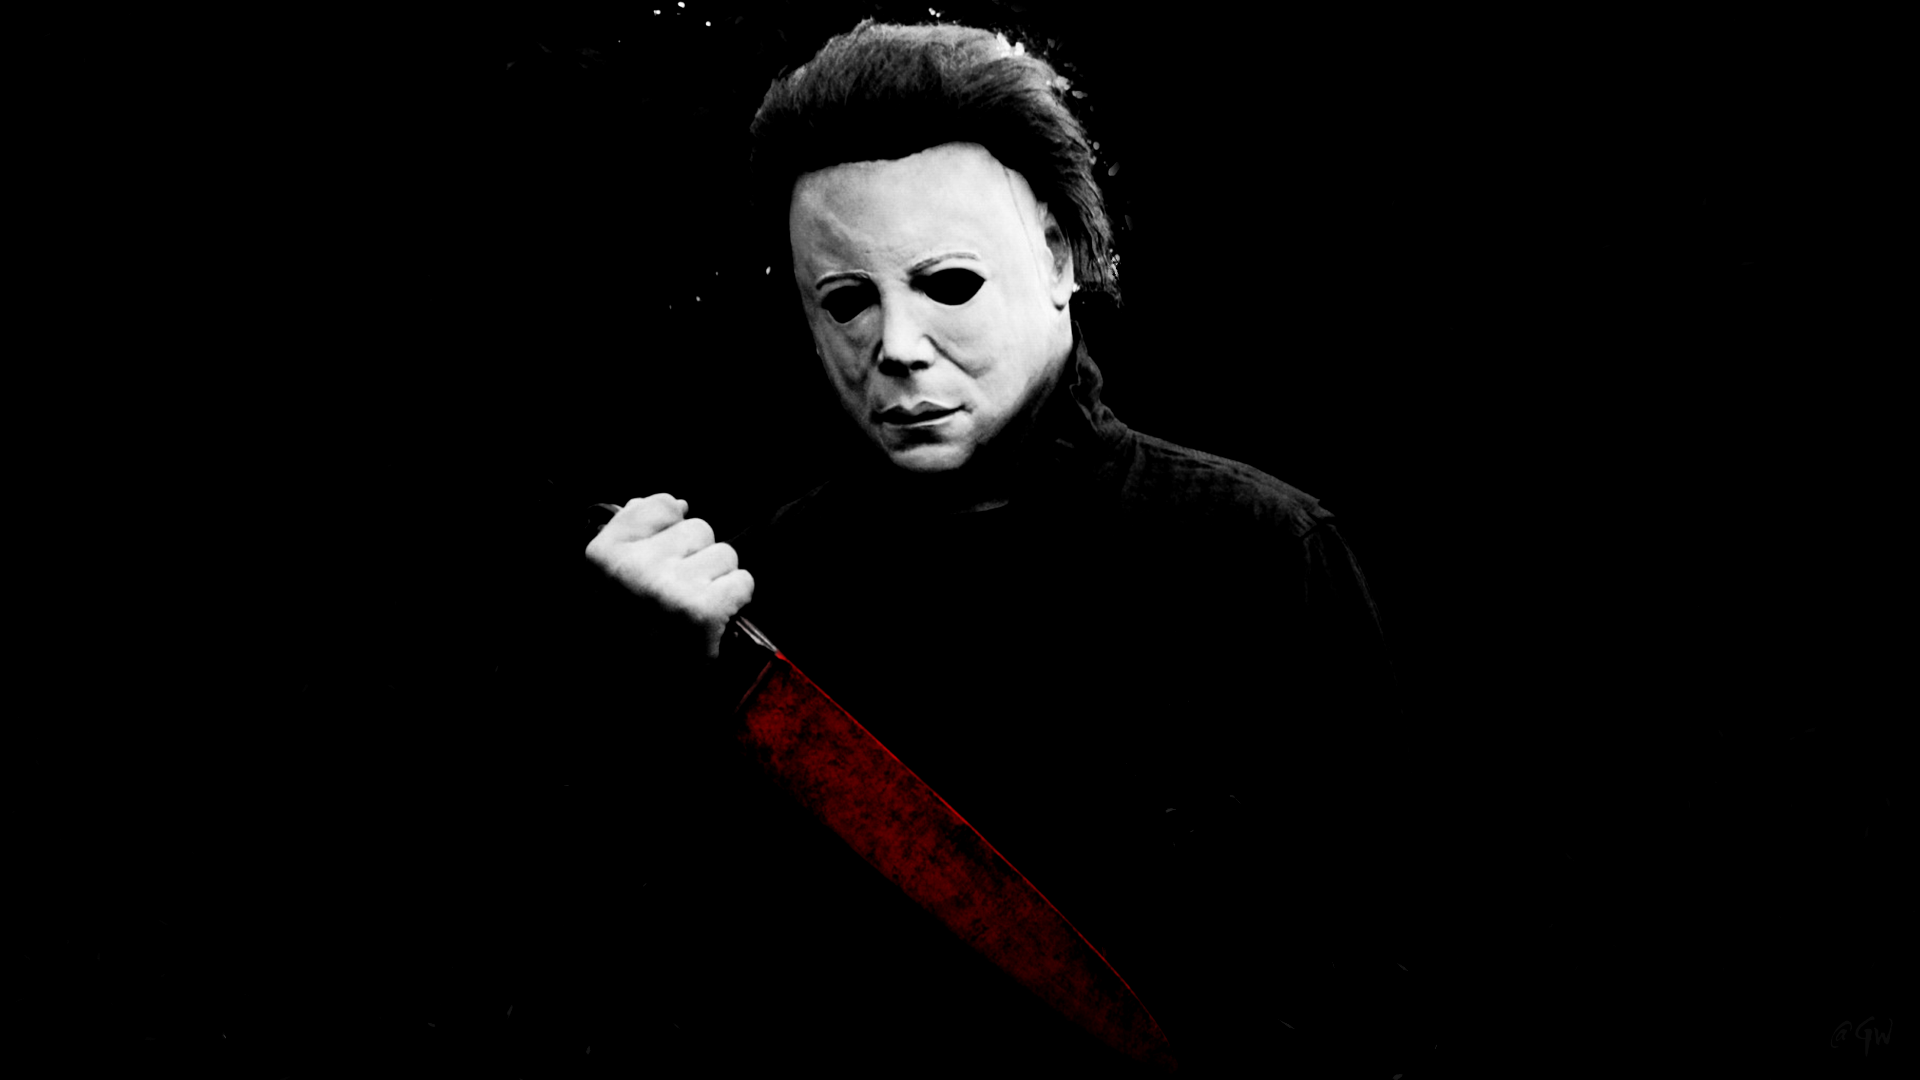 Michael Myers Wallpapers Top Free Michael Myers Backgrounds